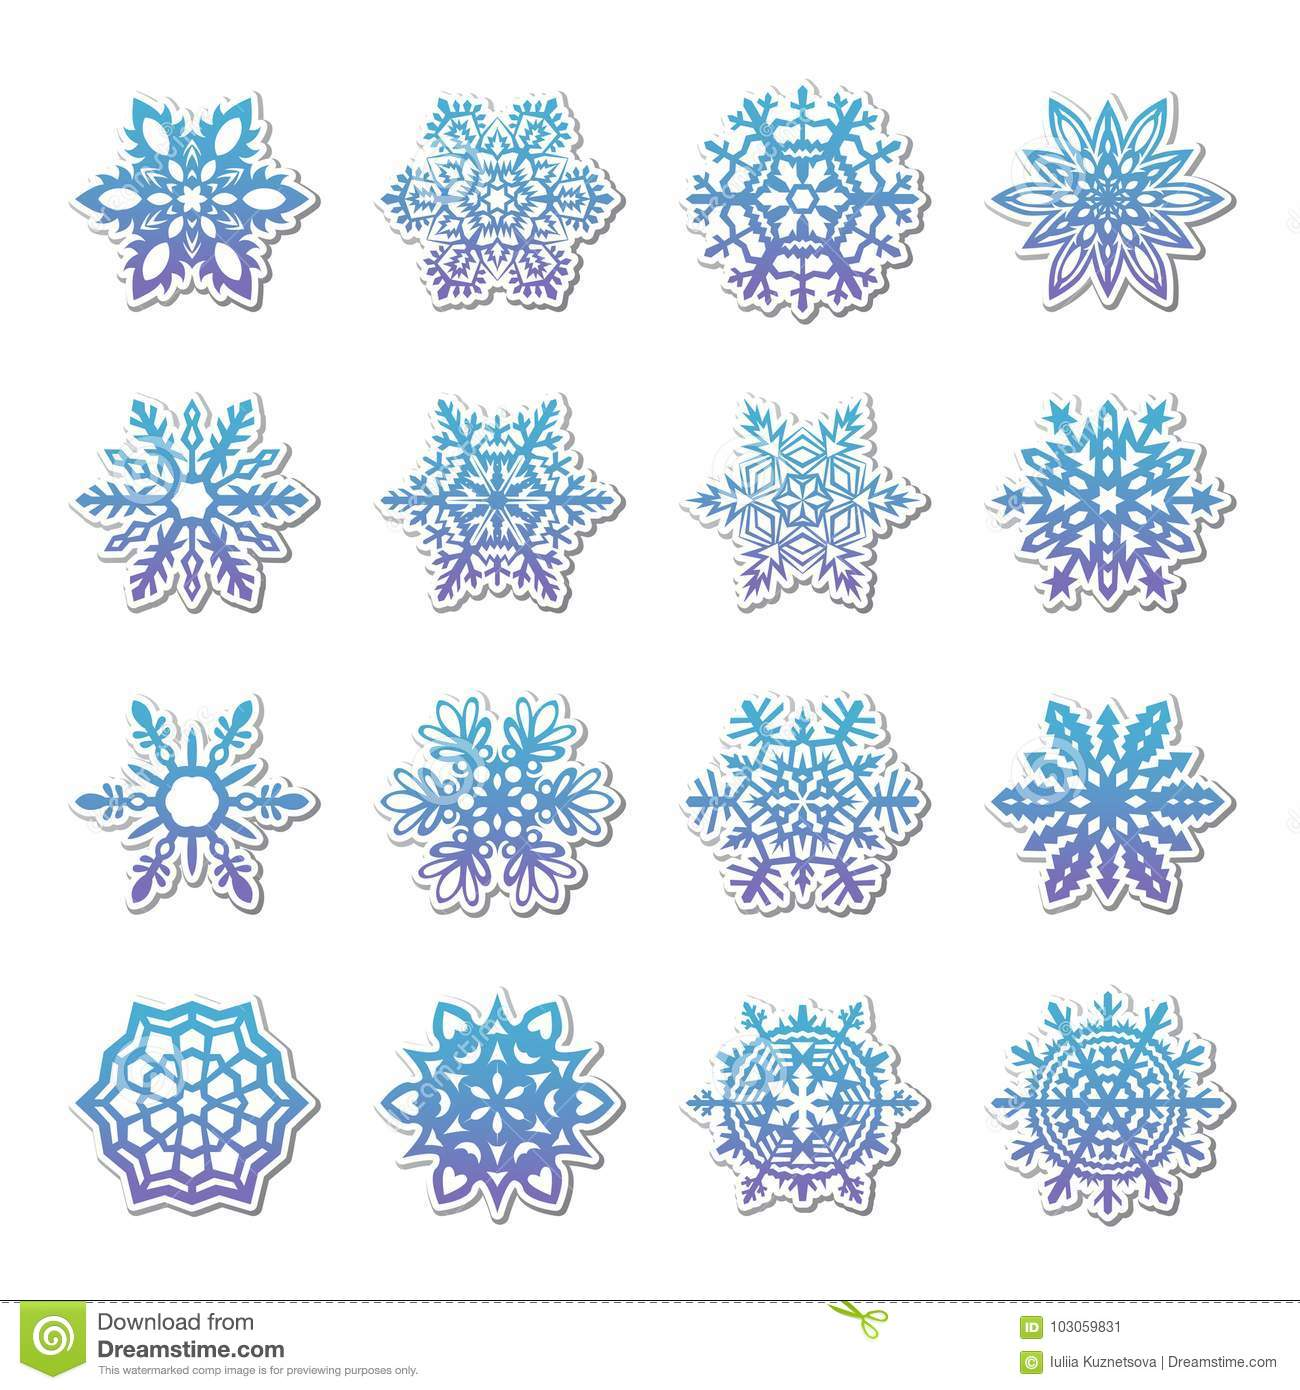 separate snowflakes doodles vector rustic christmas clipart new year snow crystal illustration in flat style